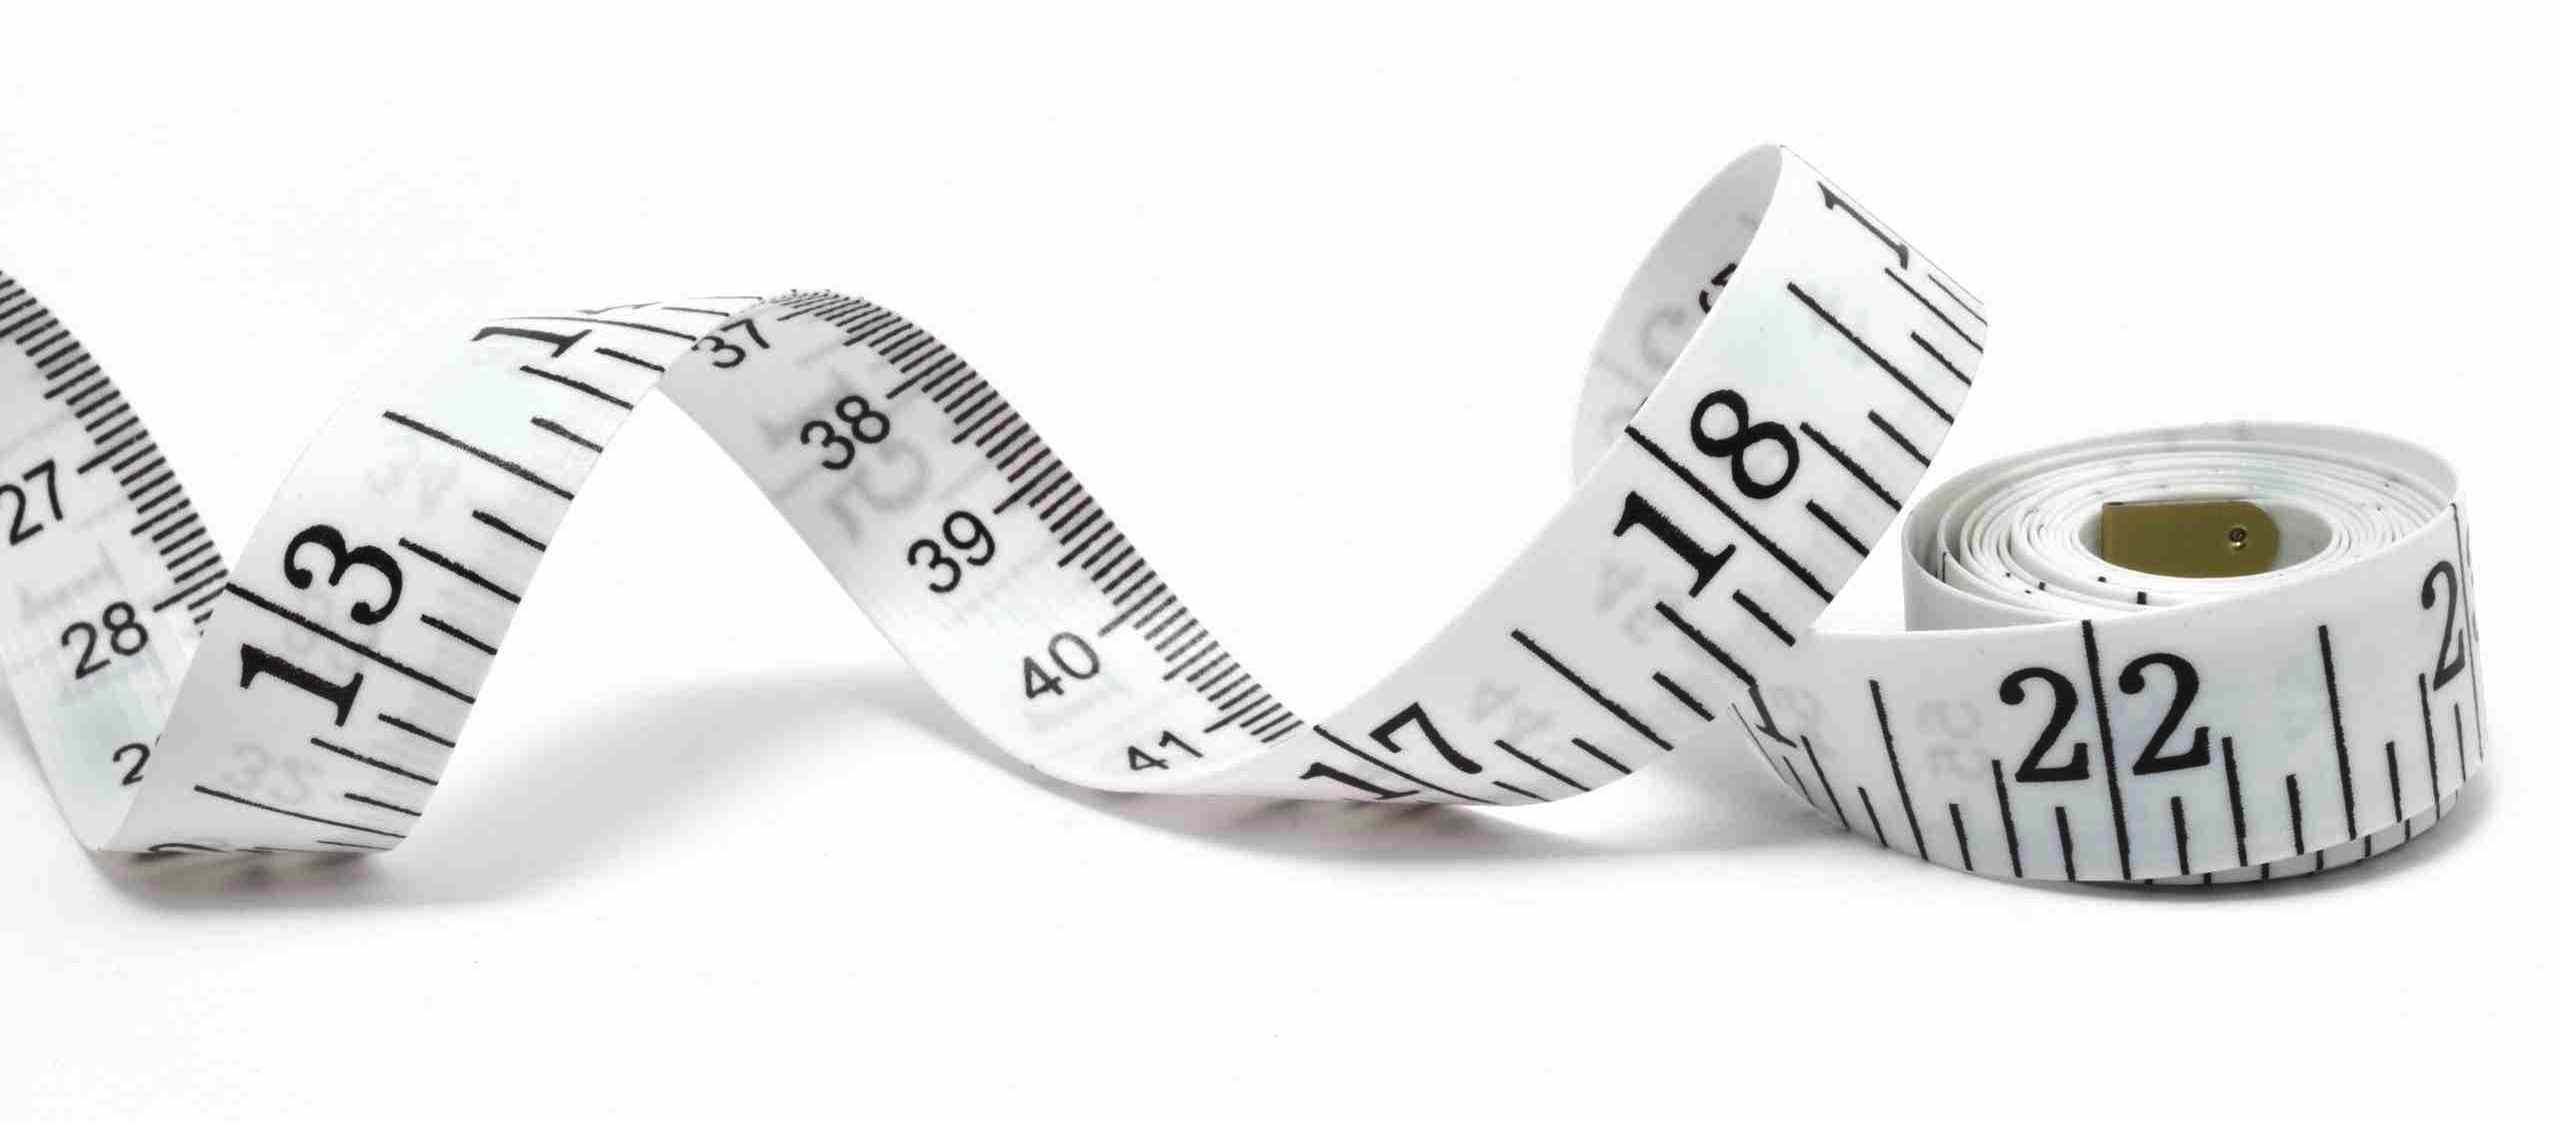 Image result for dressmaker measuring tape